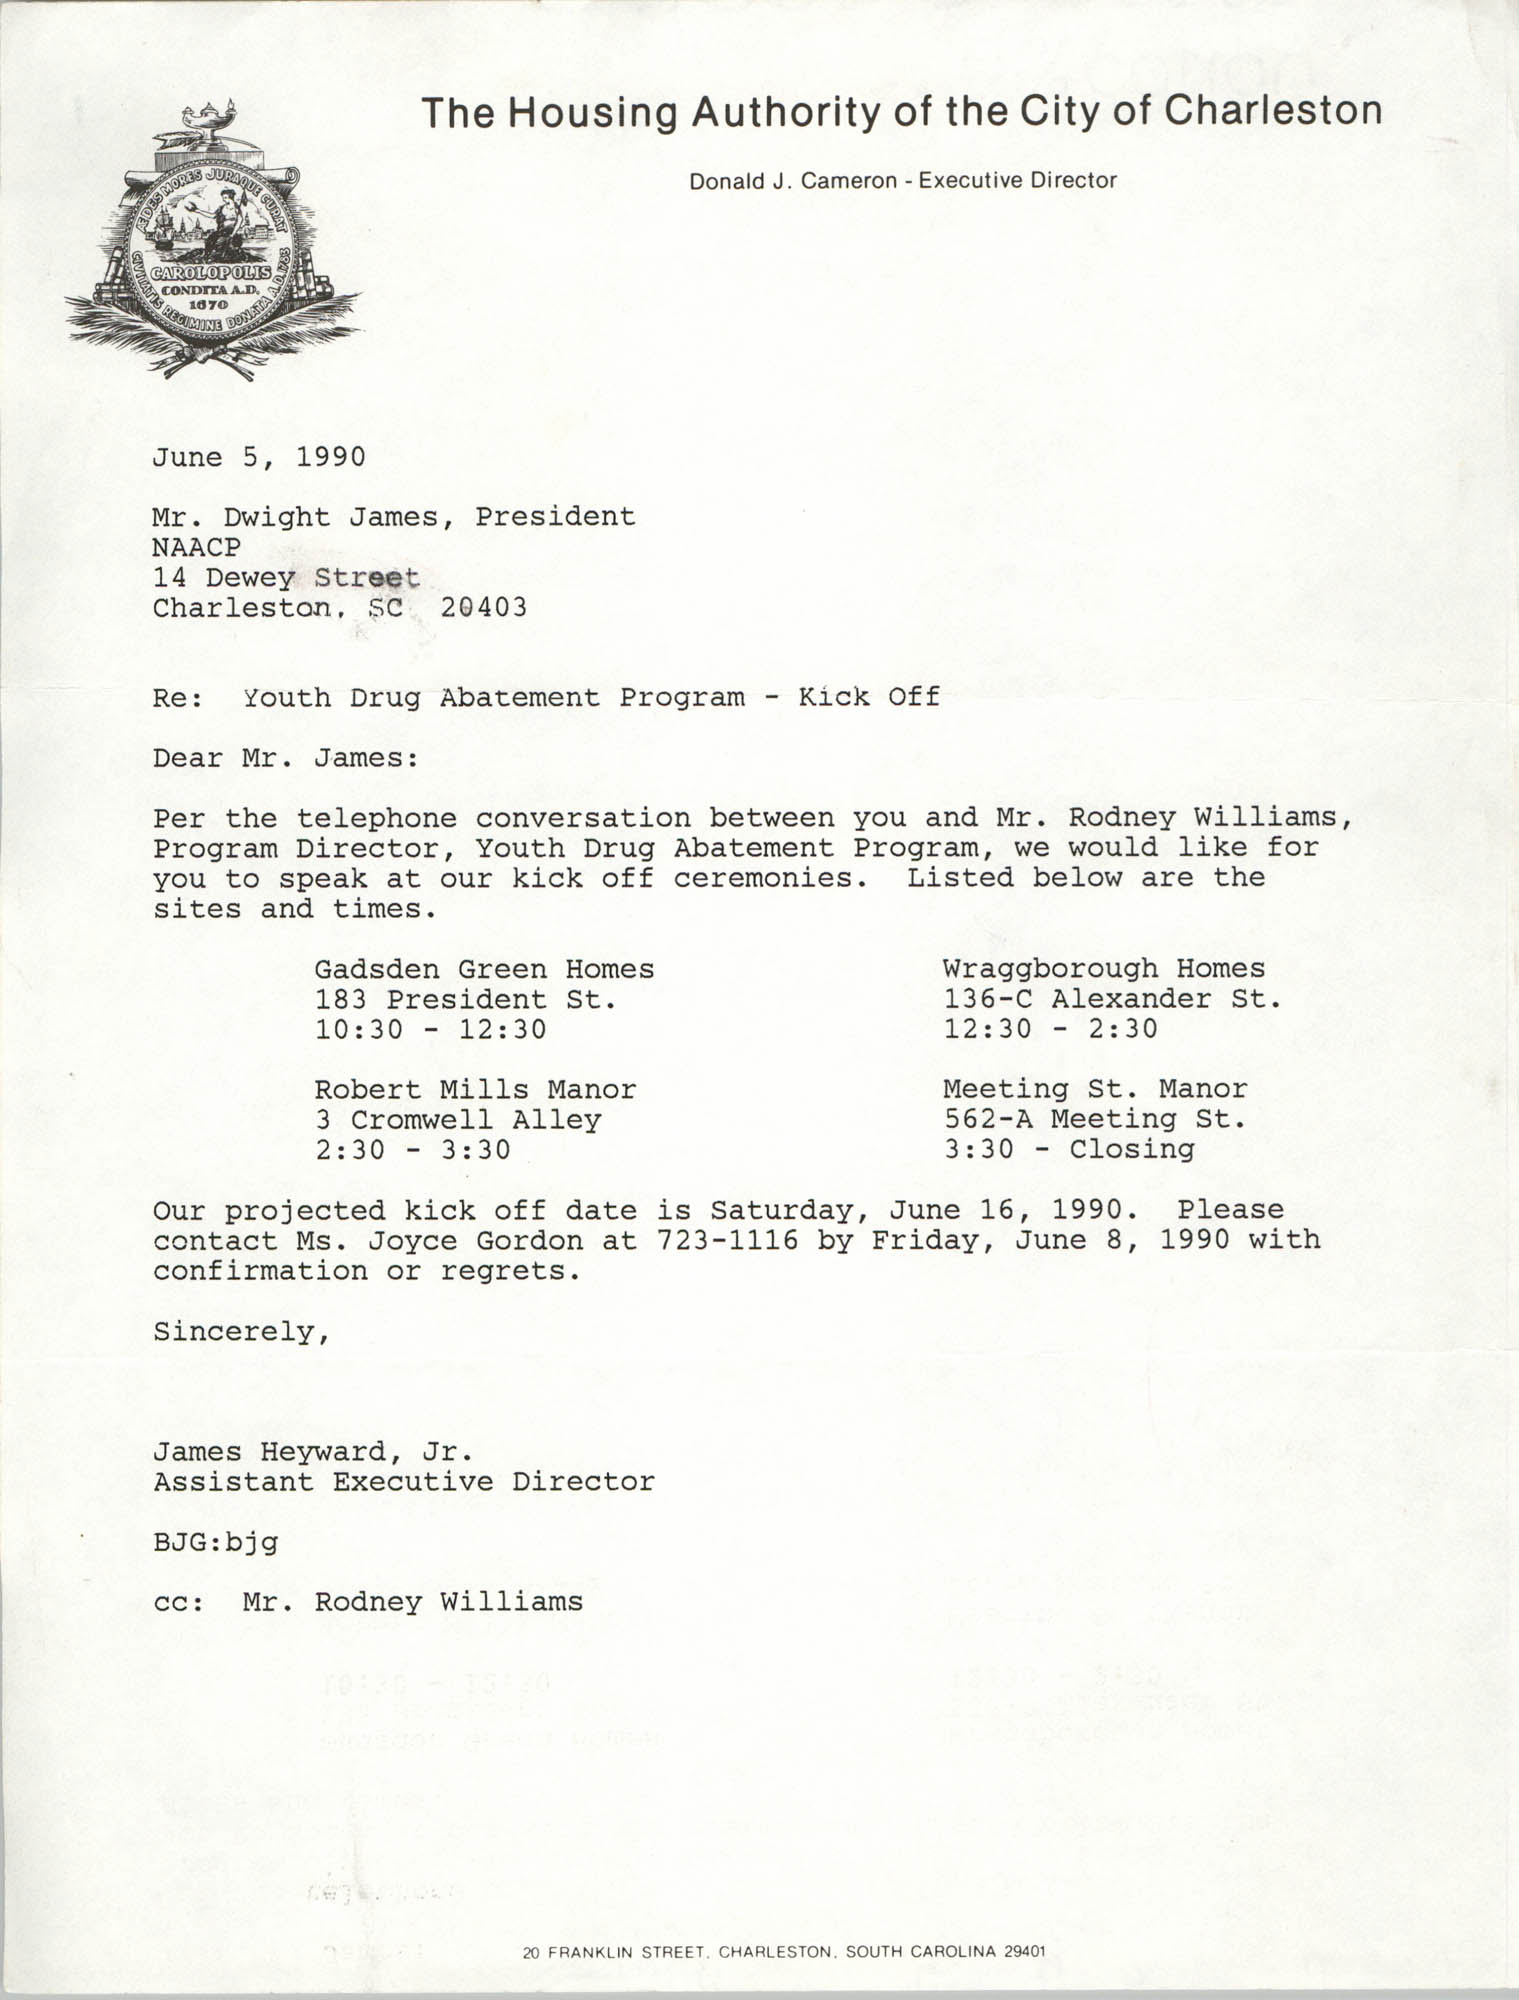 Letter from James Heyward, Jr. to Dwight James, June 5, 1990